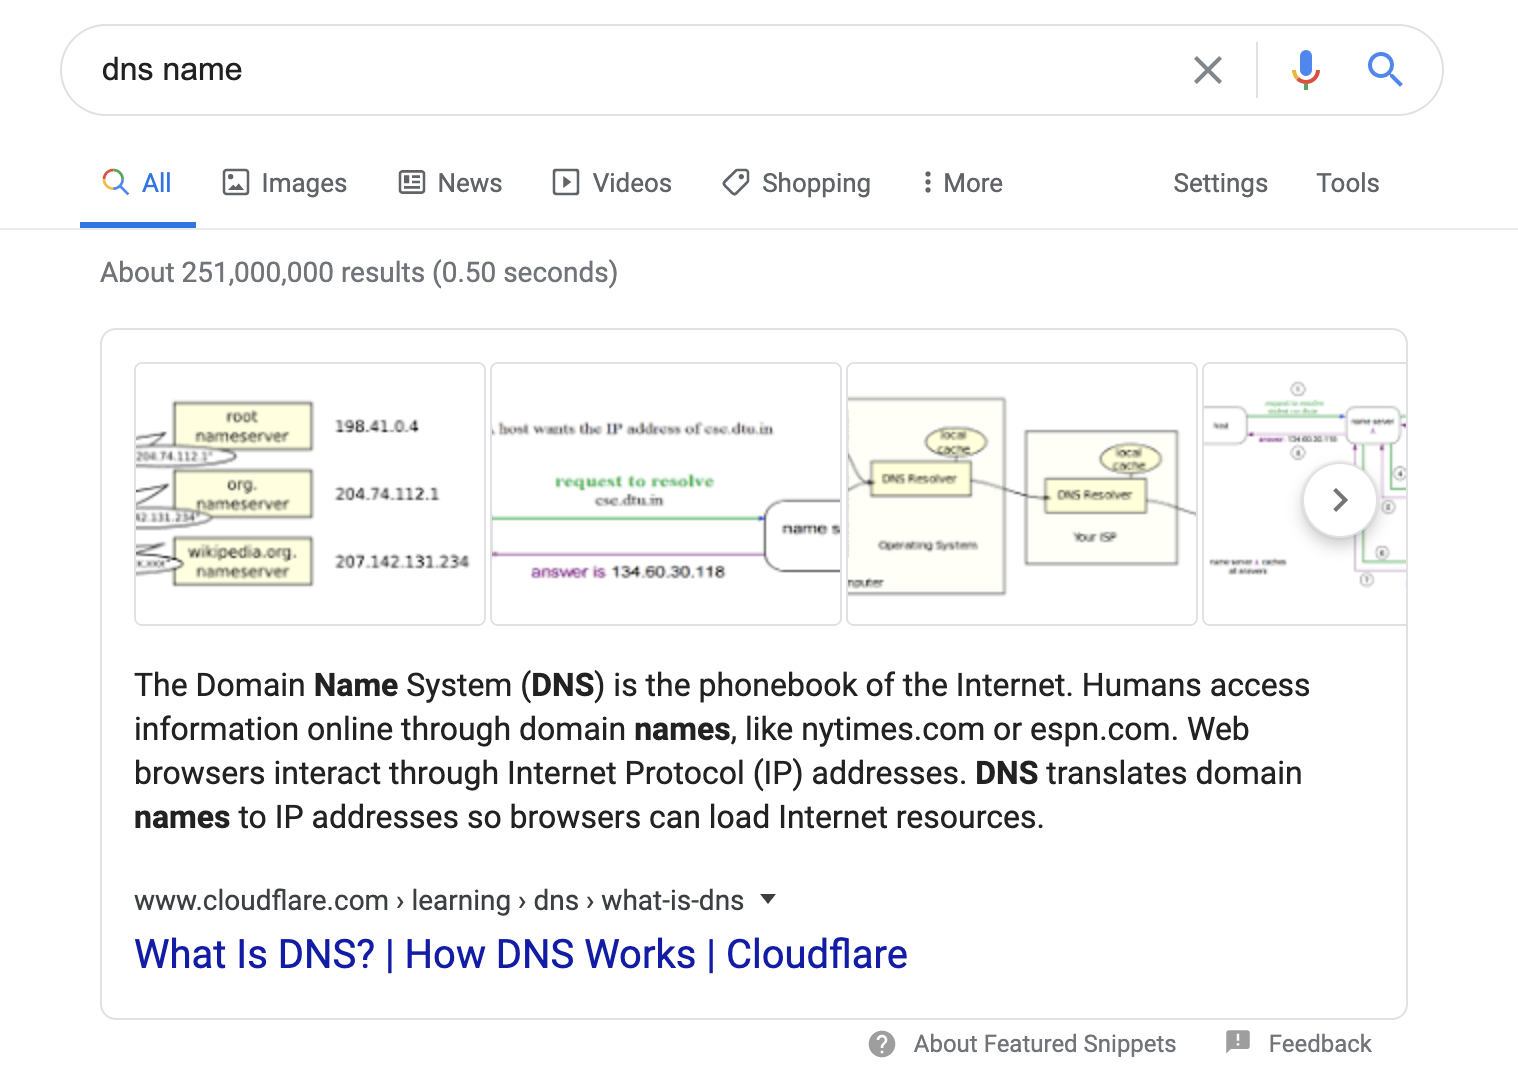 google featured snippet result for dns name query - cloudflare